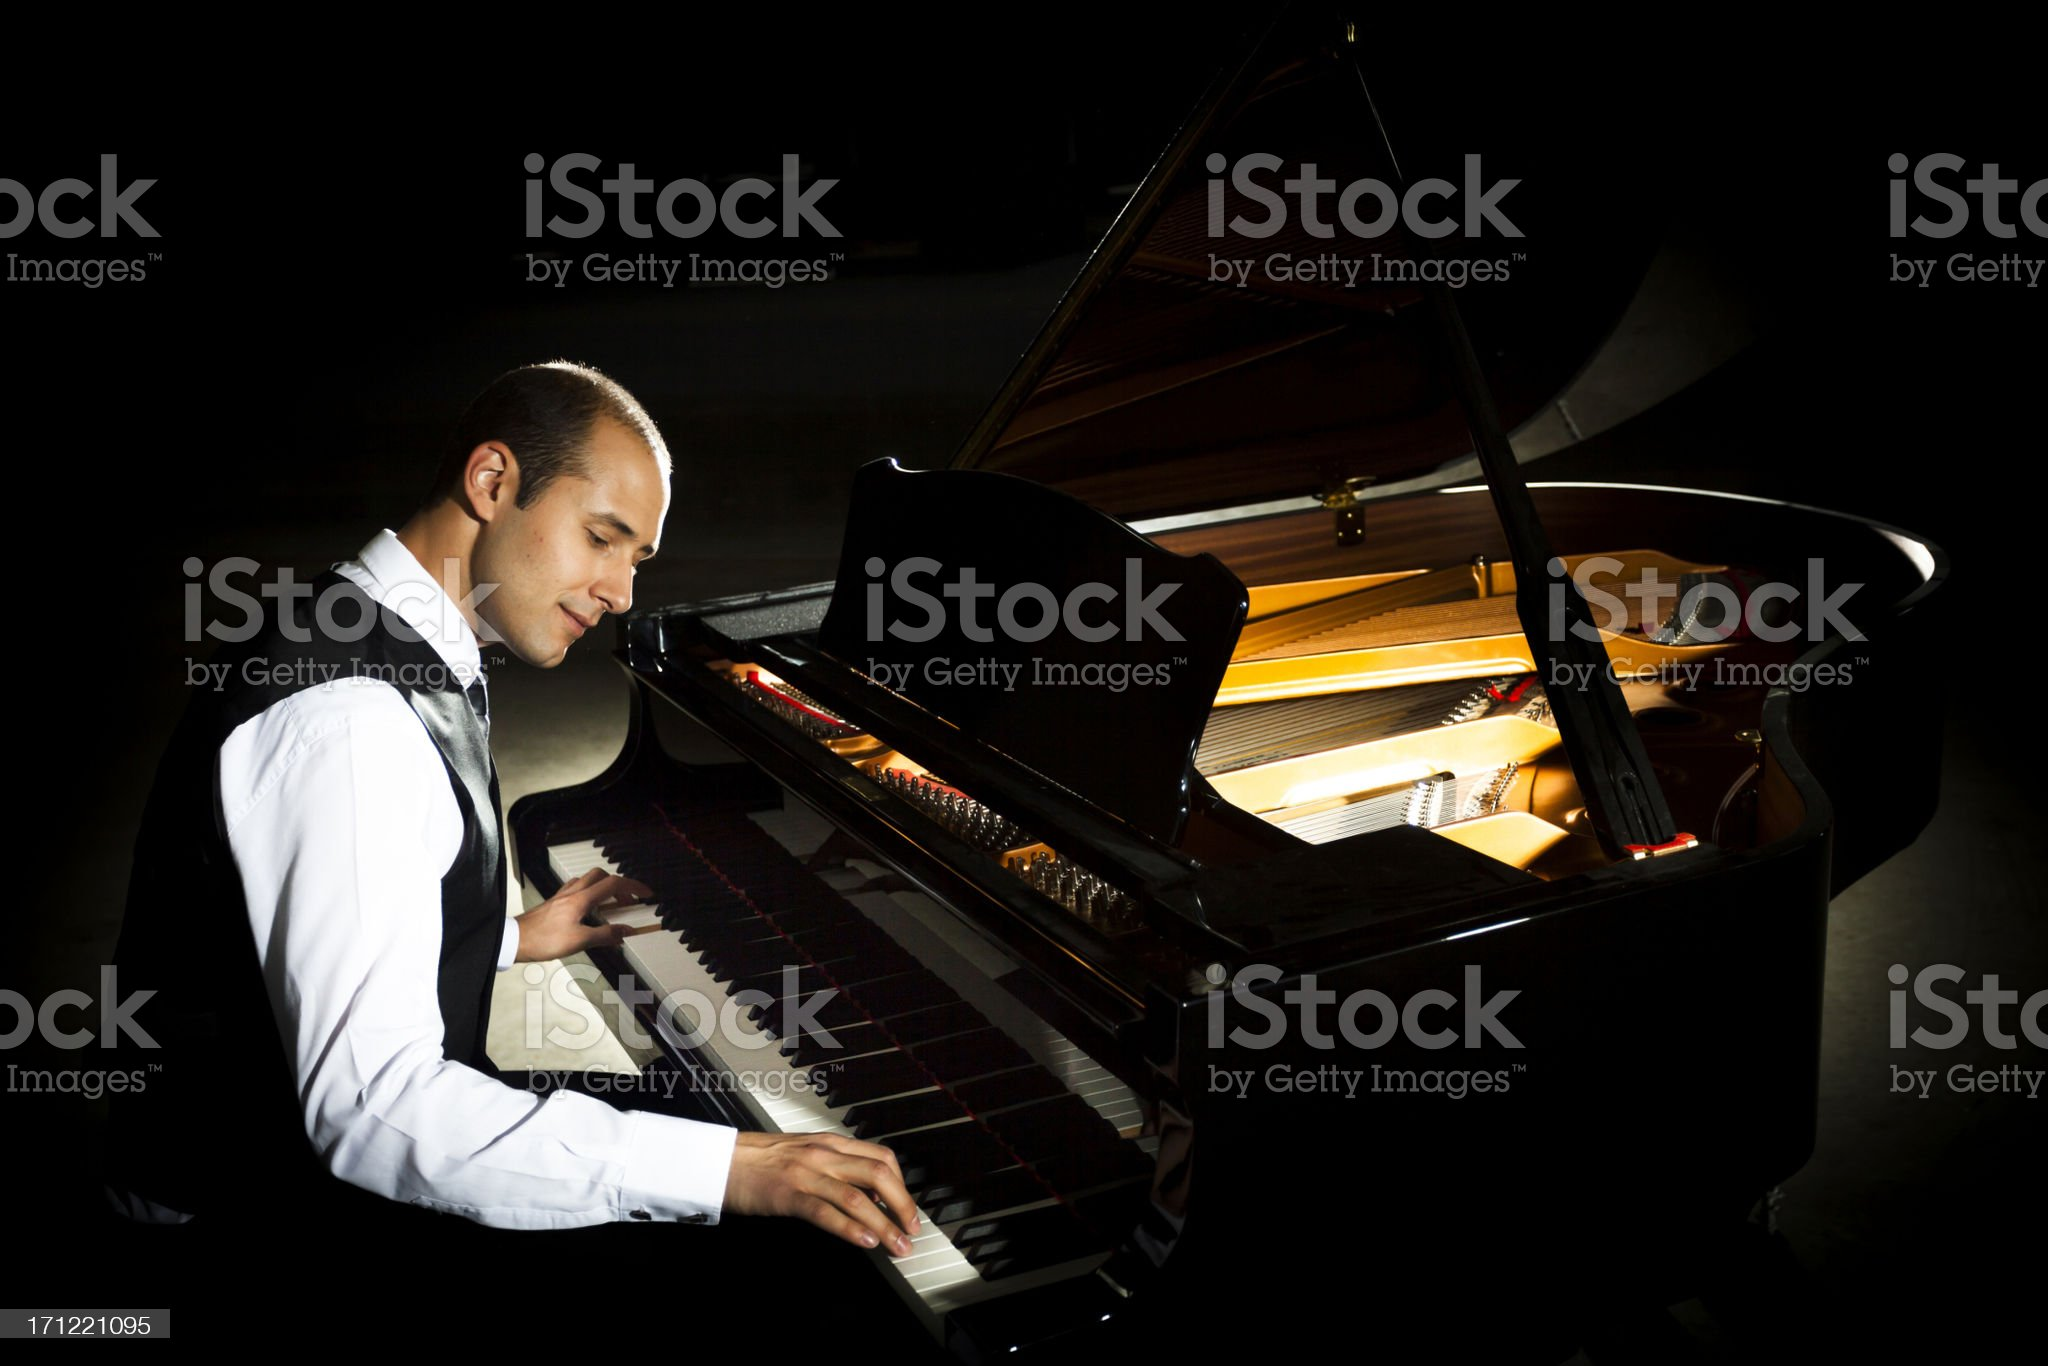 Concert Pianist royalty-free stock photo